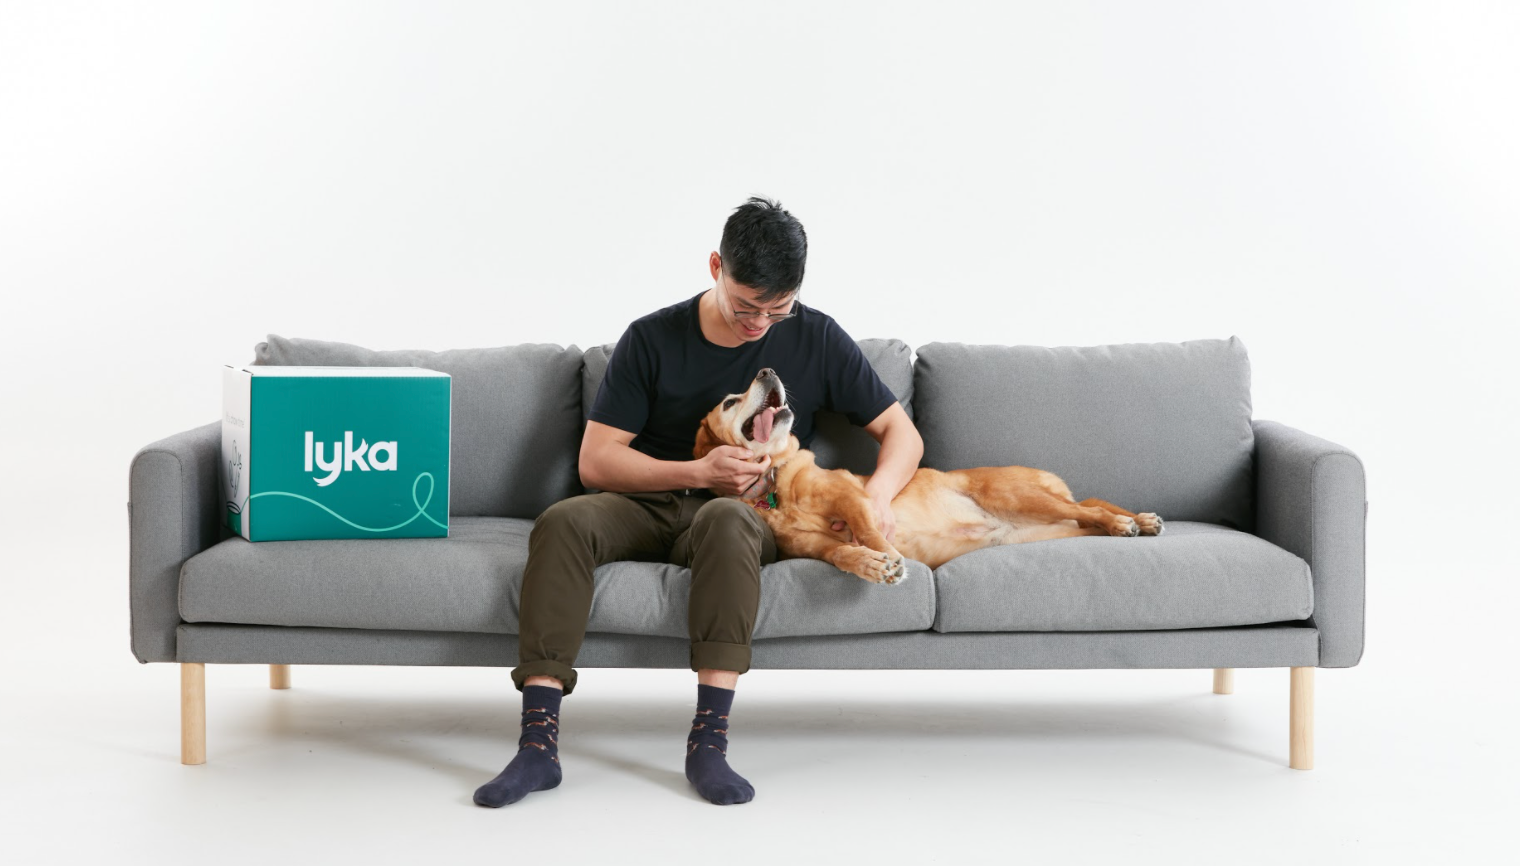 Man with dog on All Day Sofa